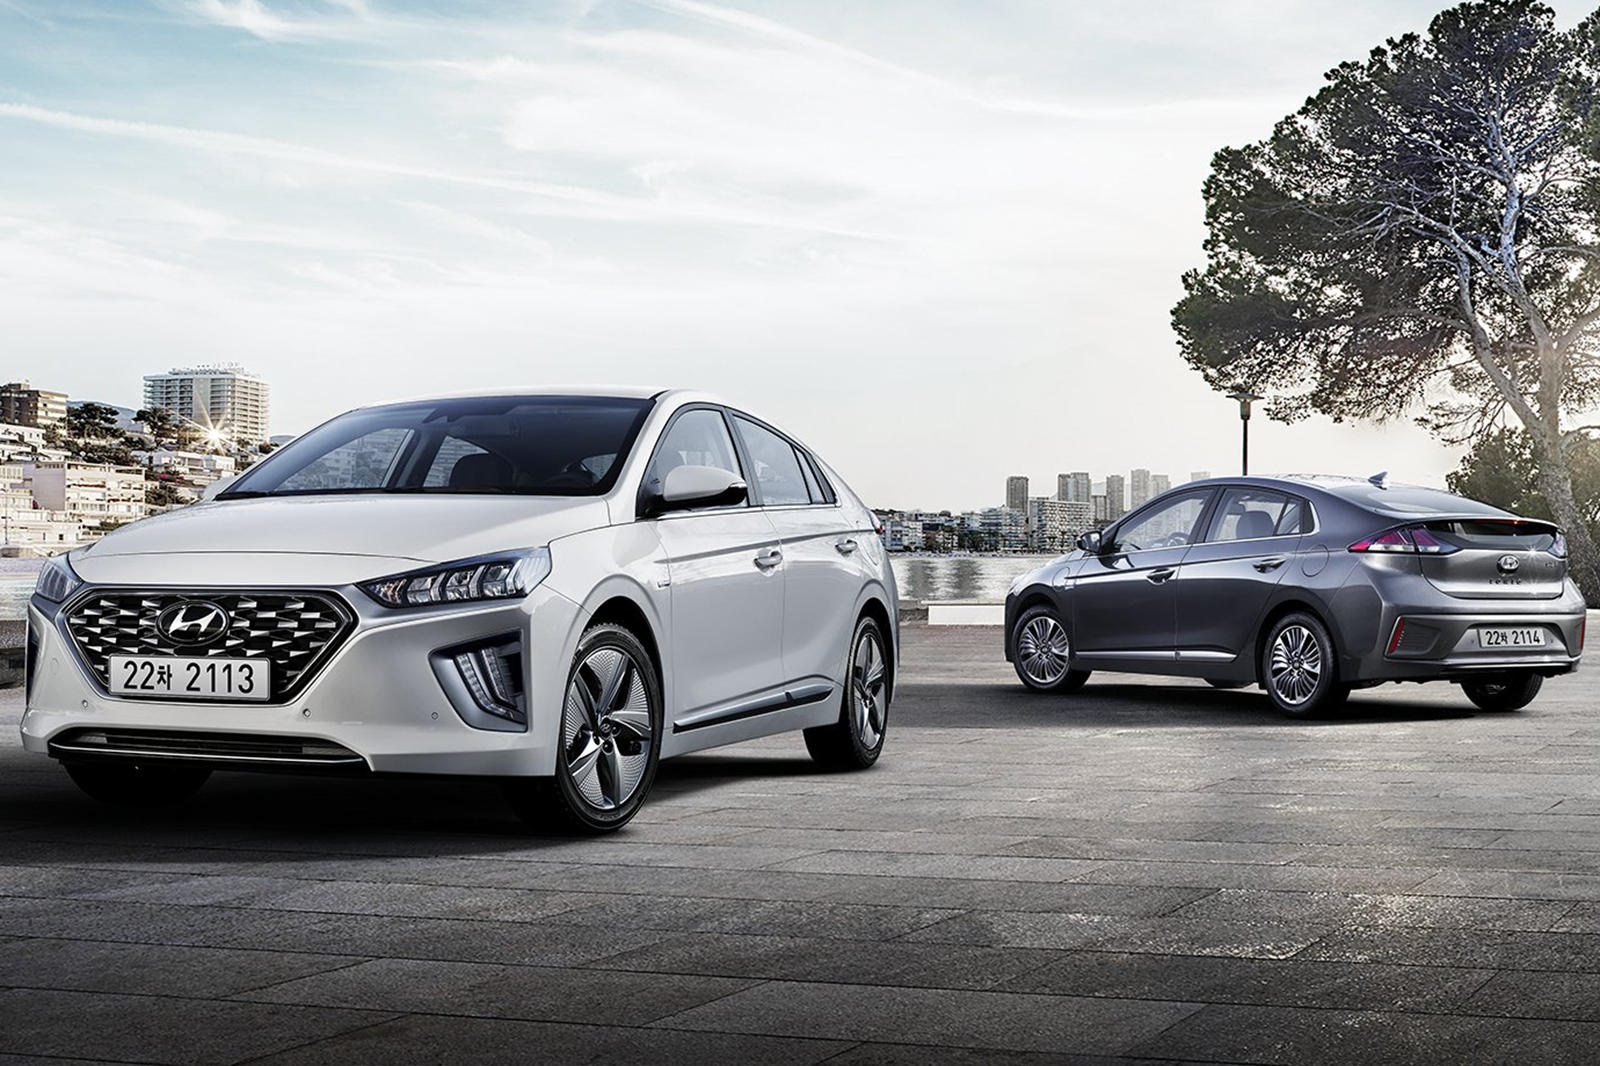 2019 hyundai ioniq hybrid gets sleeker styling and new tech carbuzz. Black Bedroom Furniture Sets. Home Design Ideas